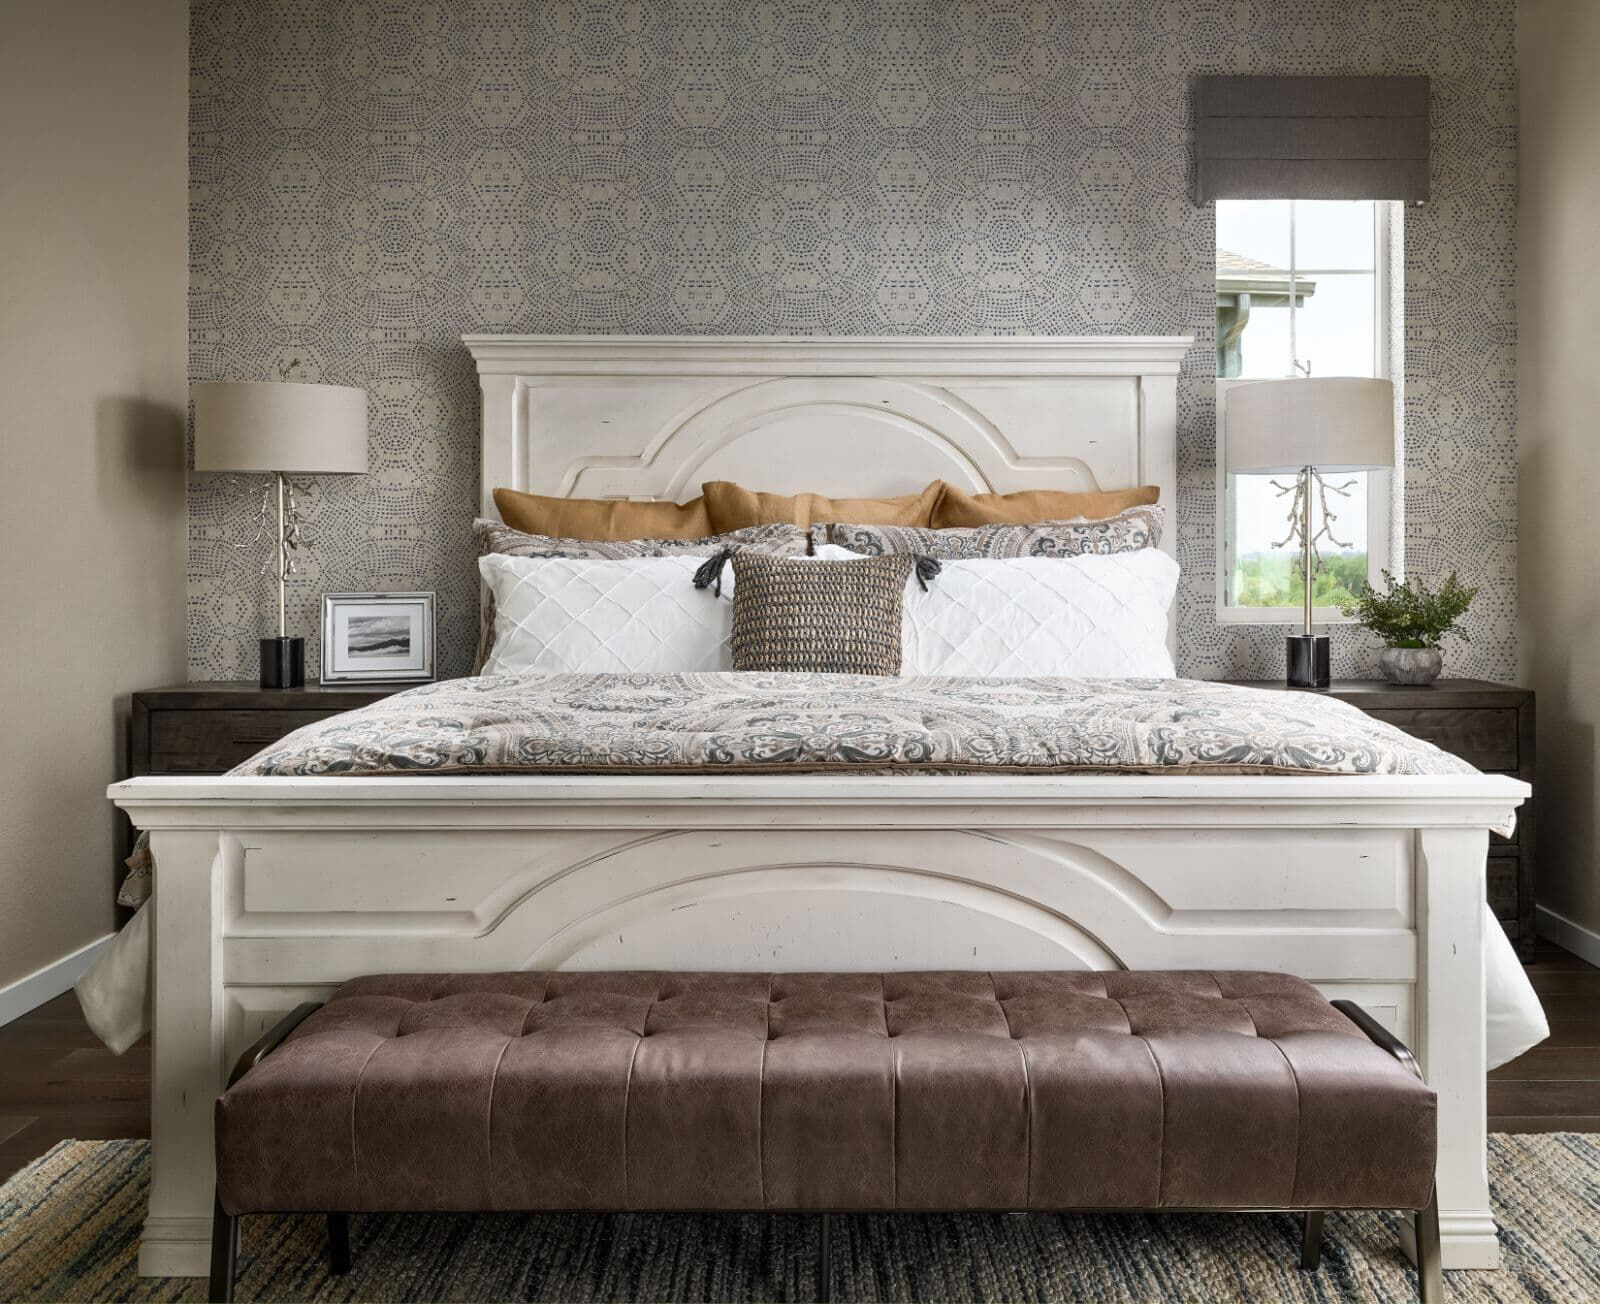 Bedroom featured in the Ovation 2 By Brookfield Residential  in Boulder-Longmont, CO